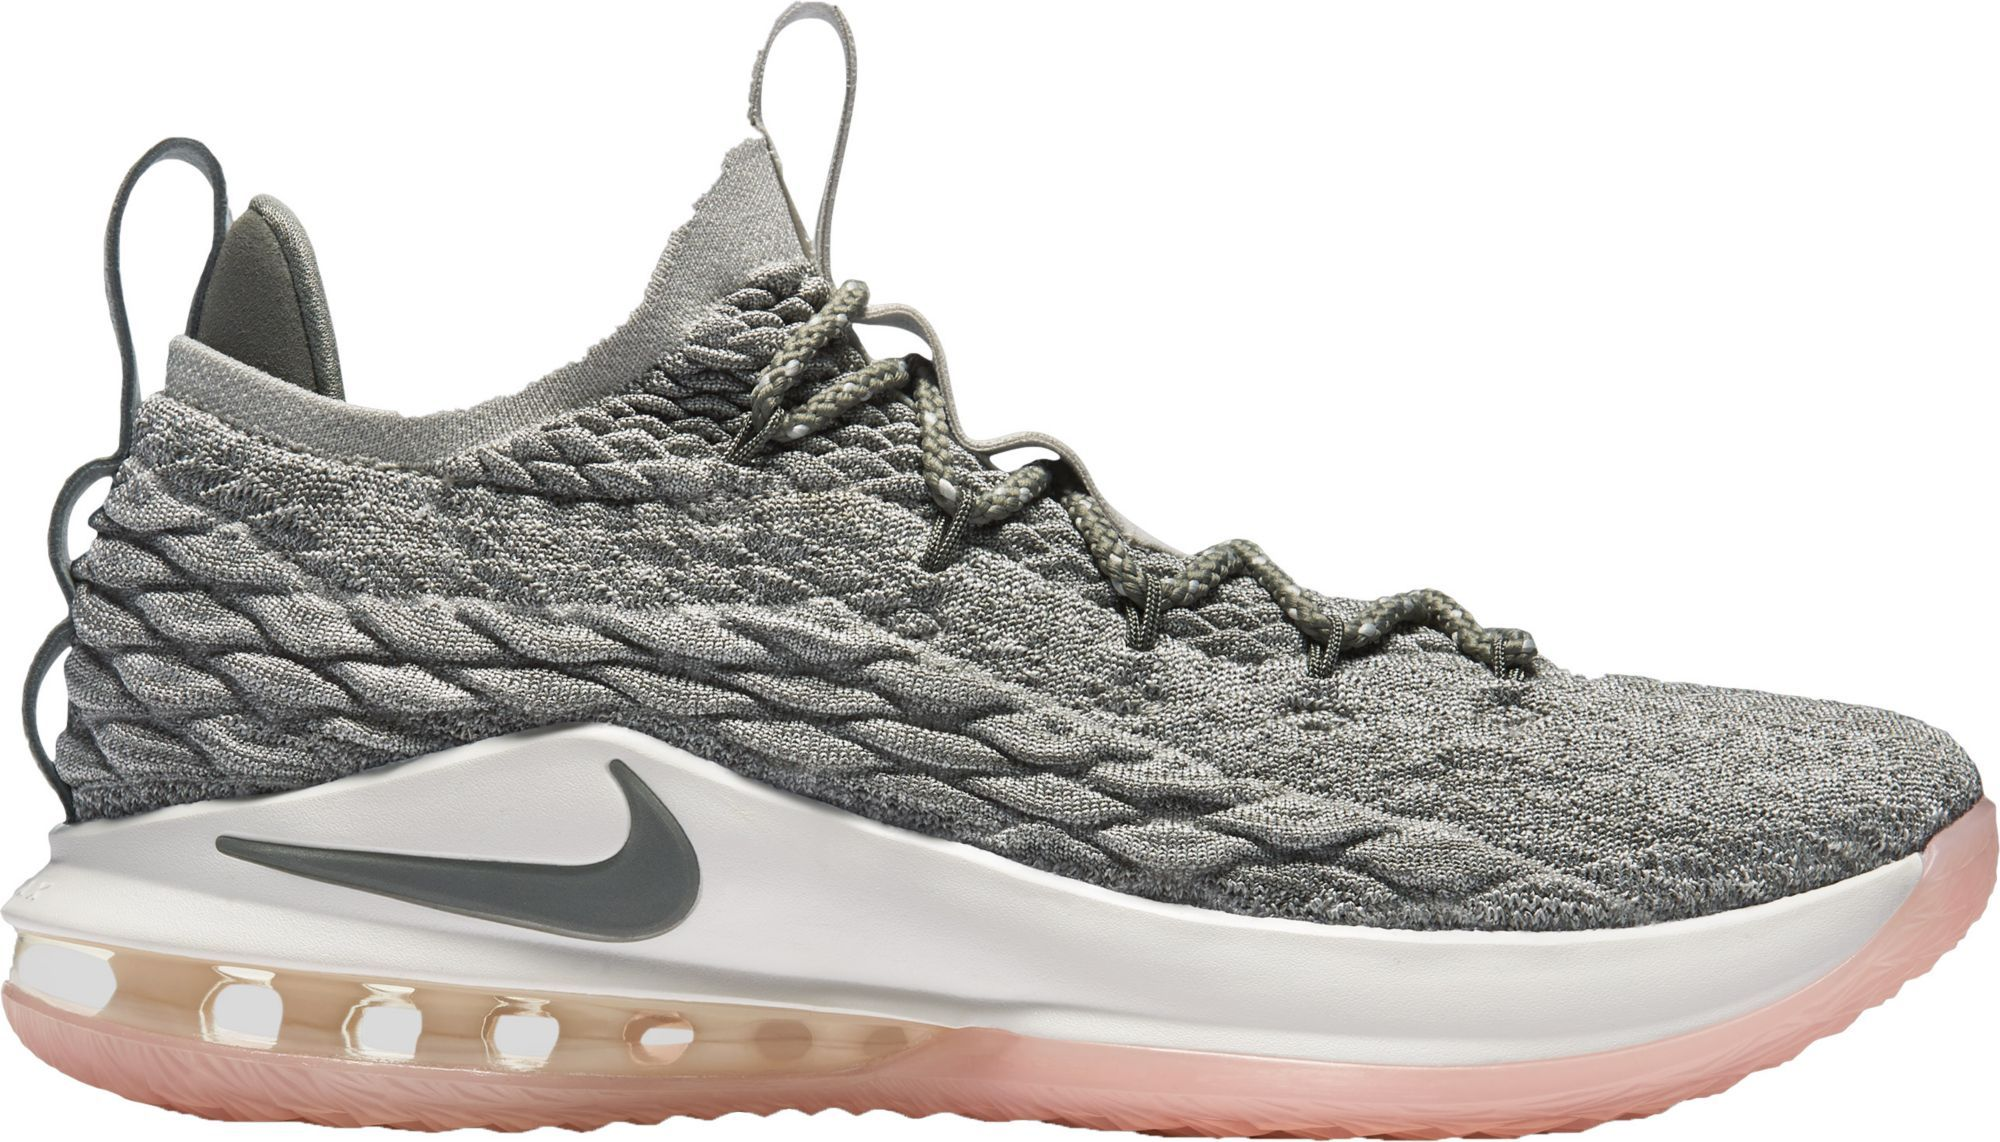 low priced 2c3f8 9d319 Nike LeBron 15 Low Basketball Shoes in 2019 | Products ...